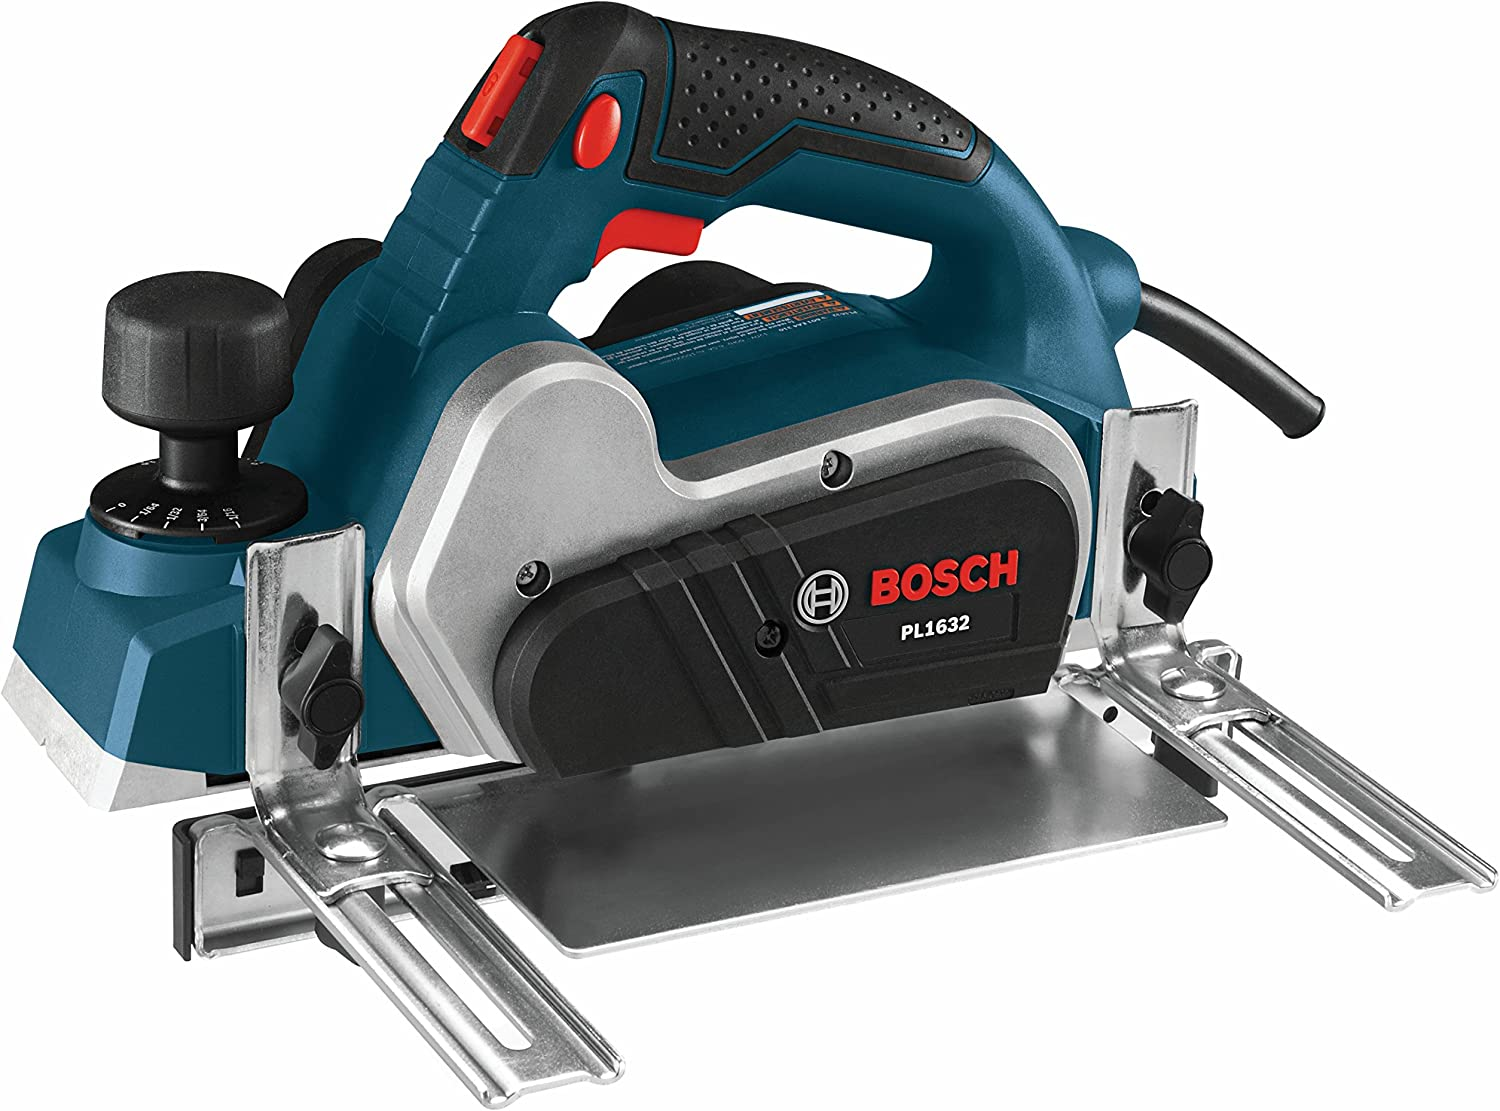 Bosch PL1632 featured image 1